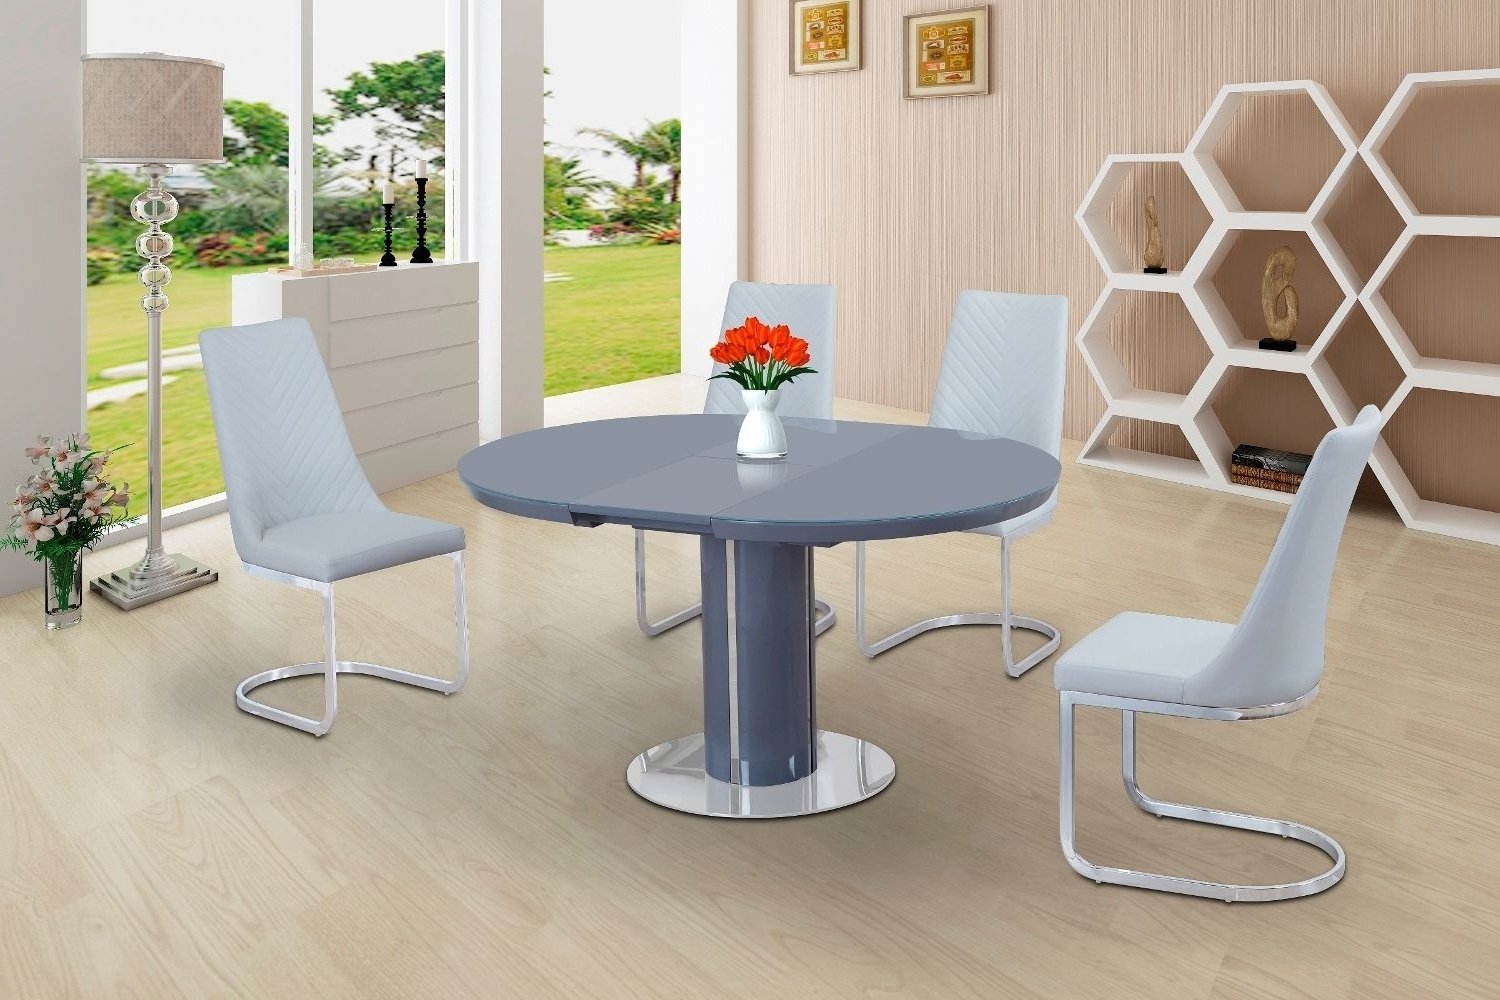 Eclipse Round Oval Gloss & Glass Extending 110 To 145 Cm Dining Pertaining To Latest Glass Folding Dining Tables (View 9 of 25)